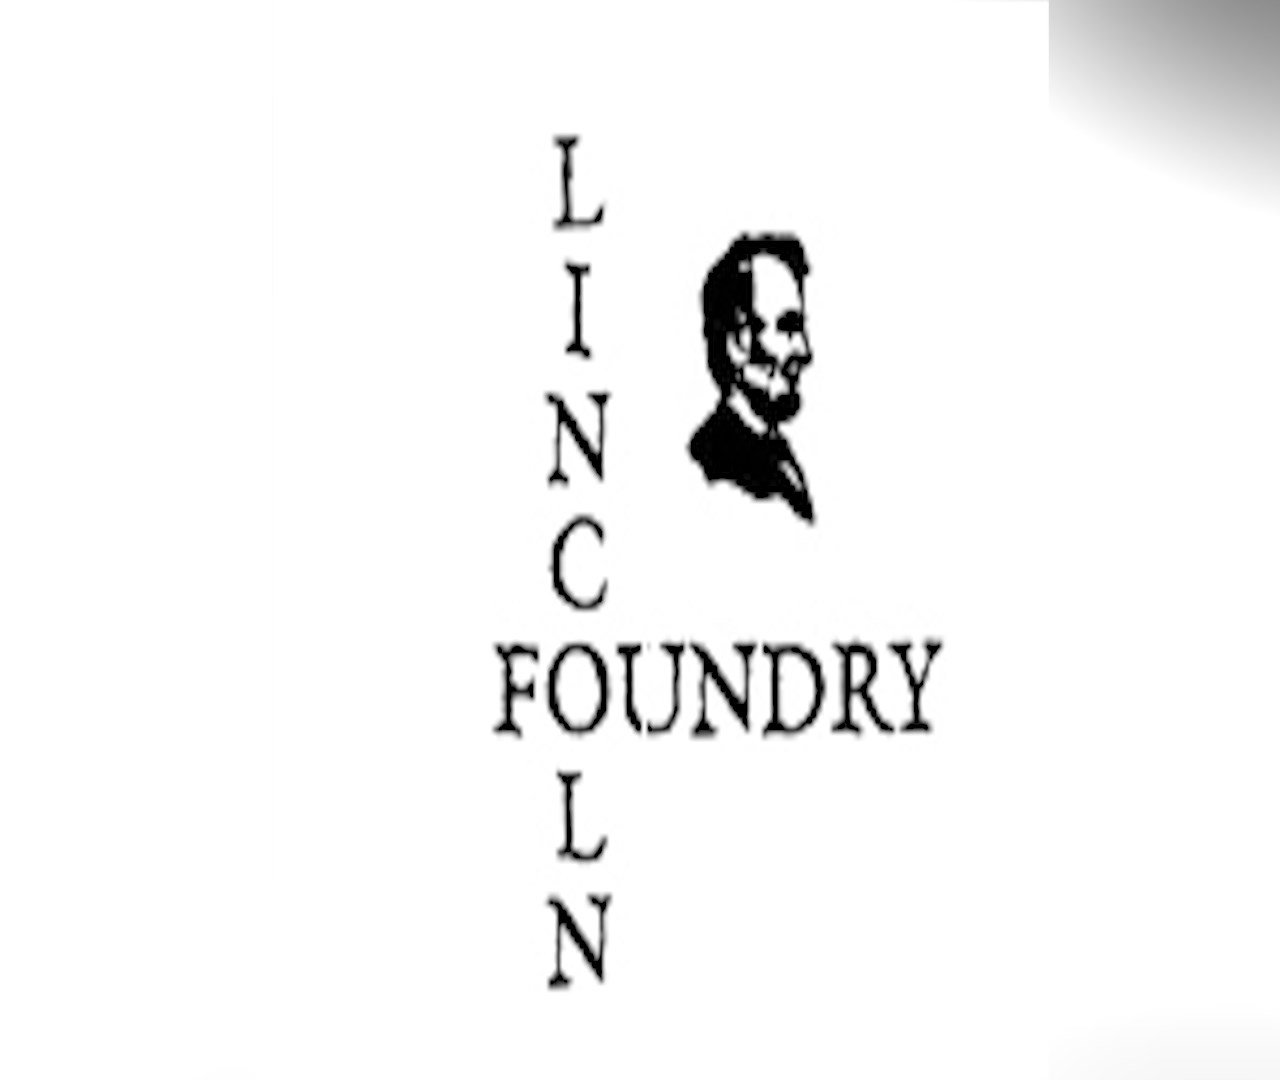 Lincoln Foundry